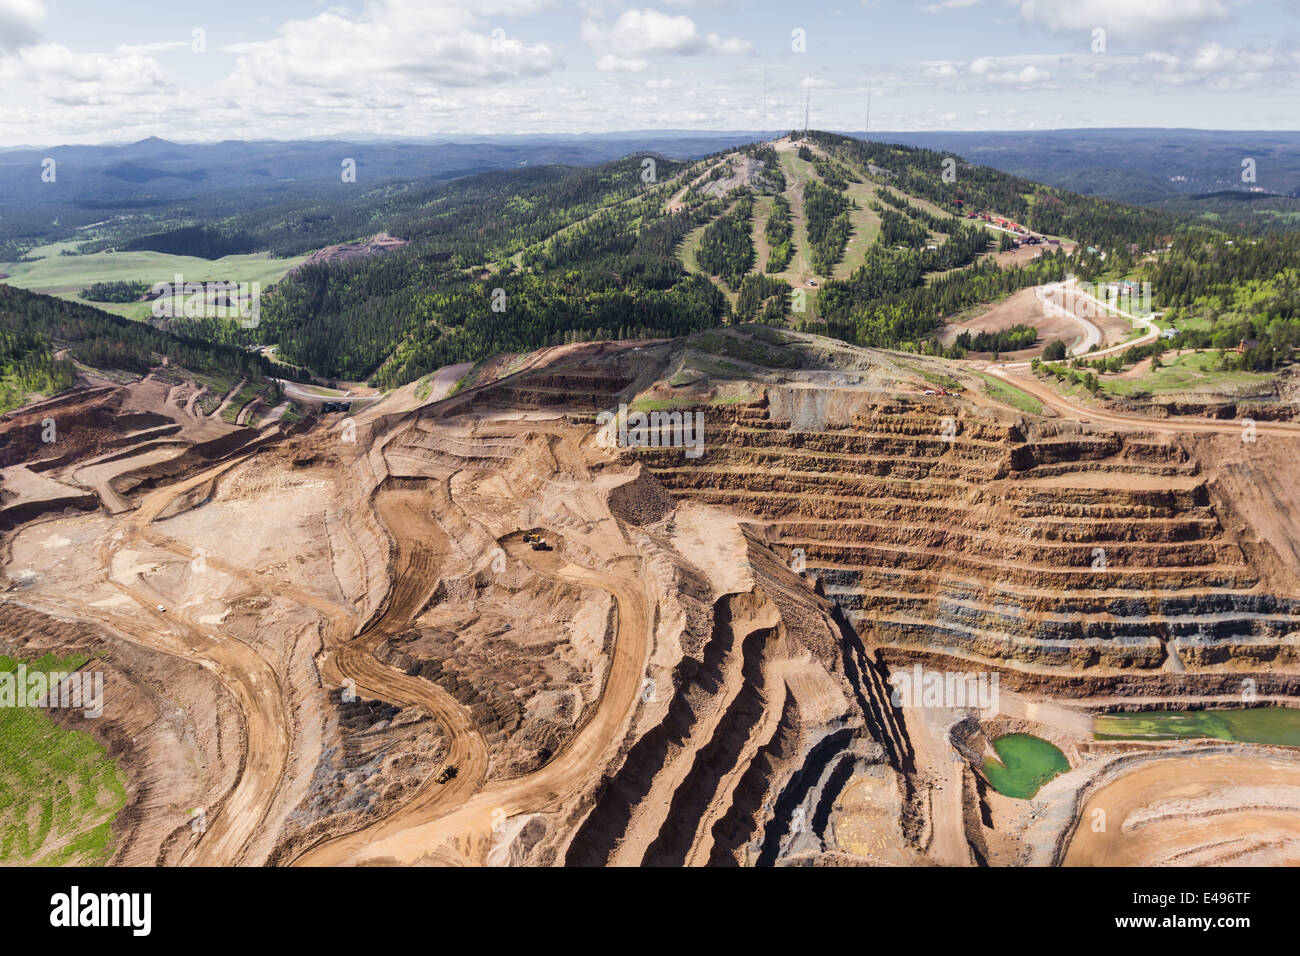 aerial view of an open pit mine in South Dakota - Stock Image